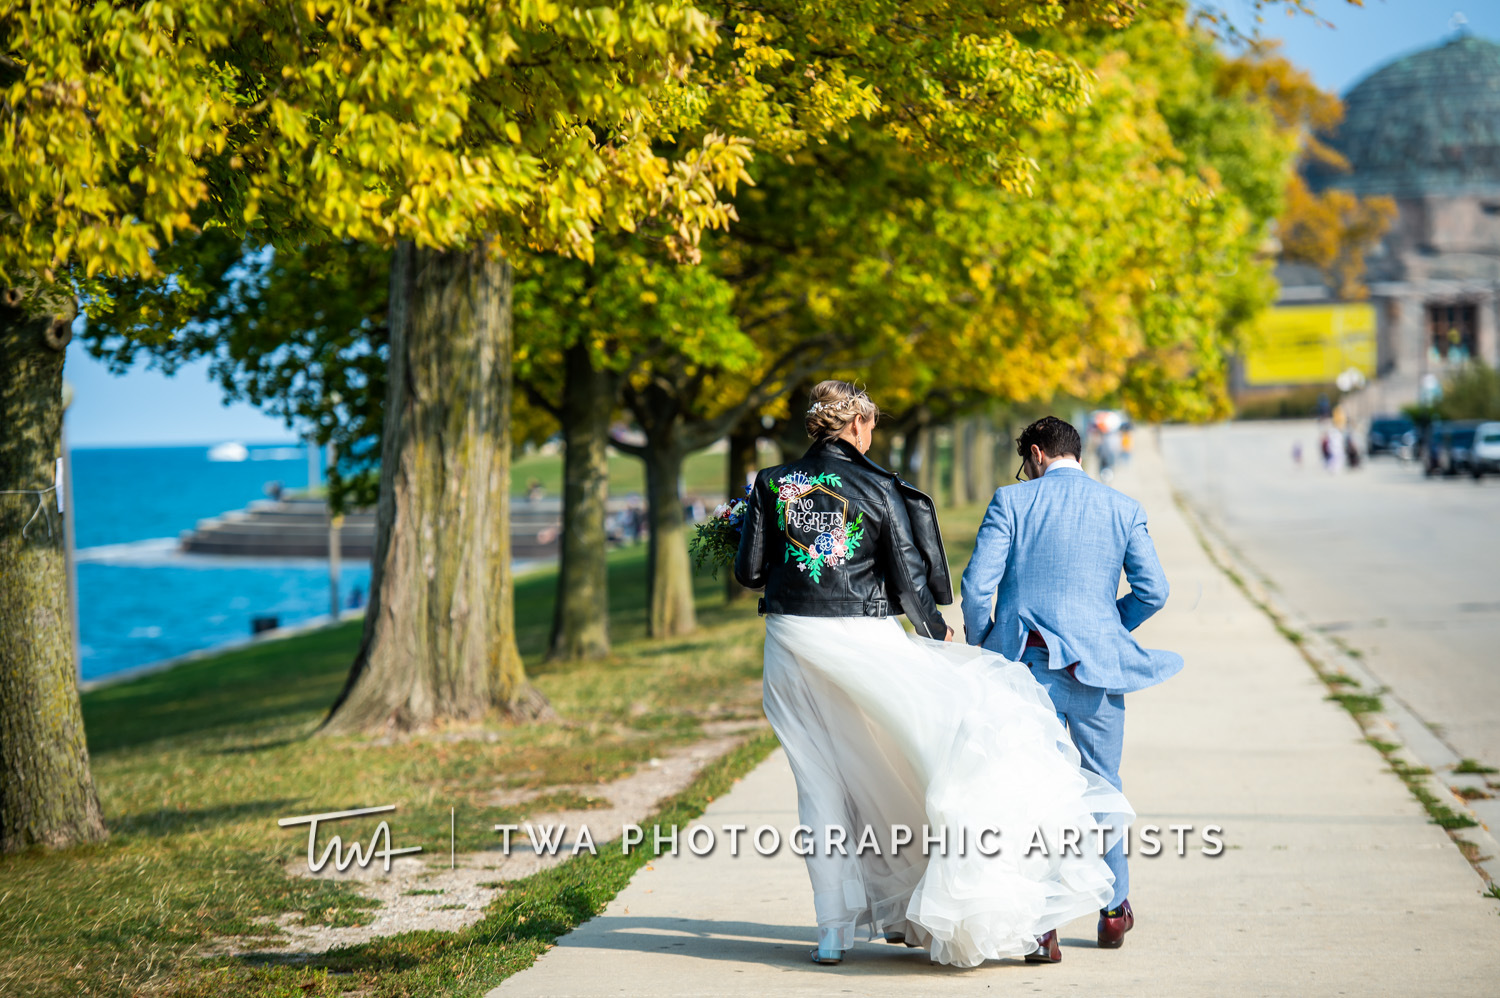 Chicago-Wedding-Photographer-TWA-Photographic-Artists-City-Hall-Event_Masterova_Alkhateeb_AA-0175-Edit